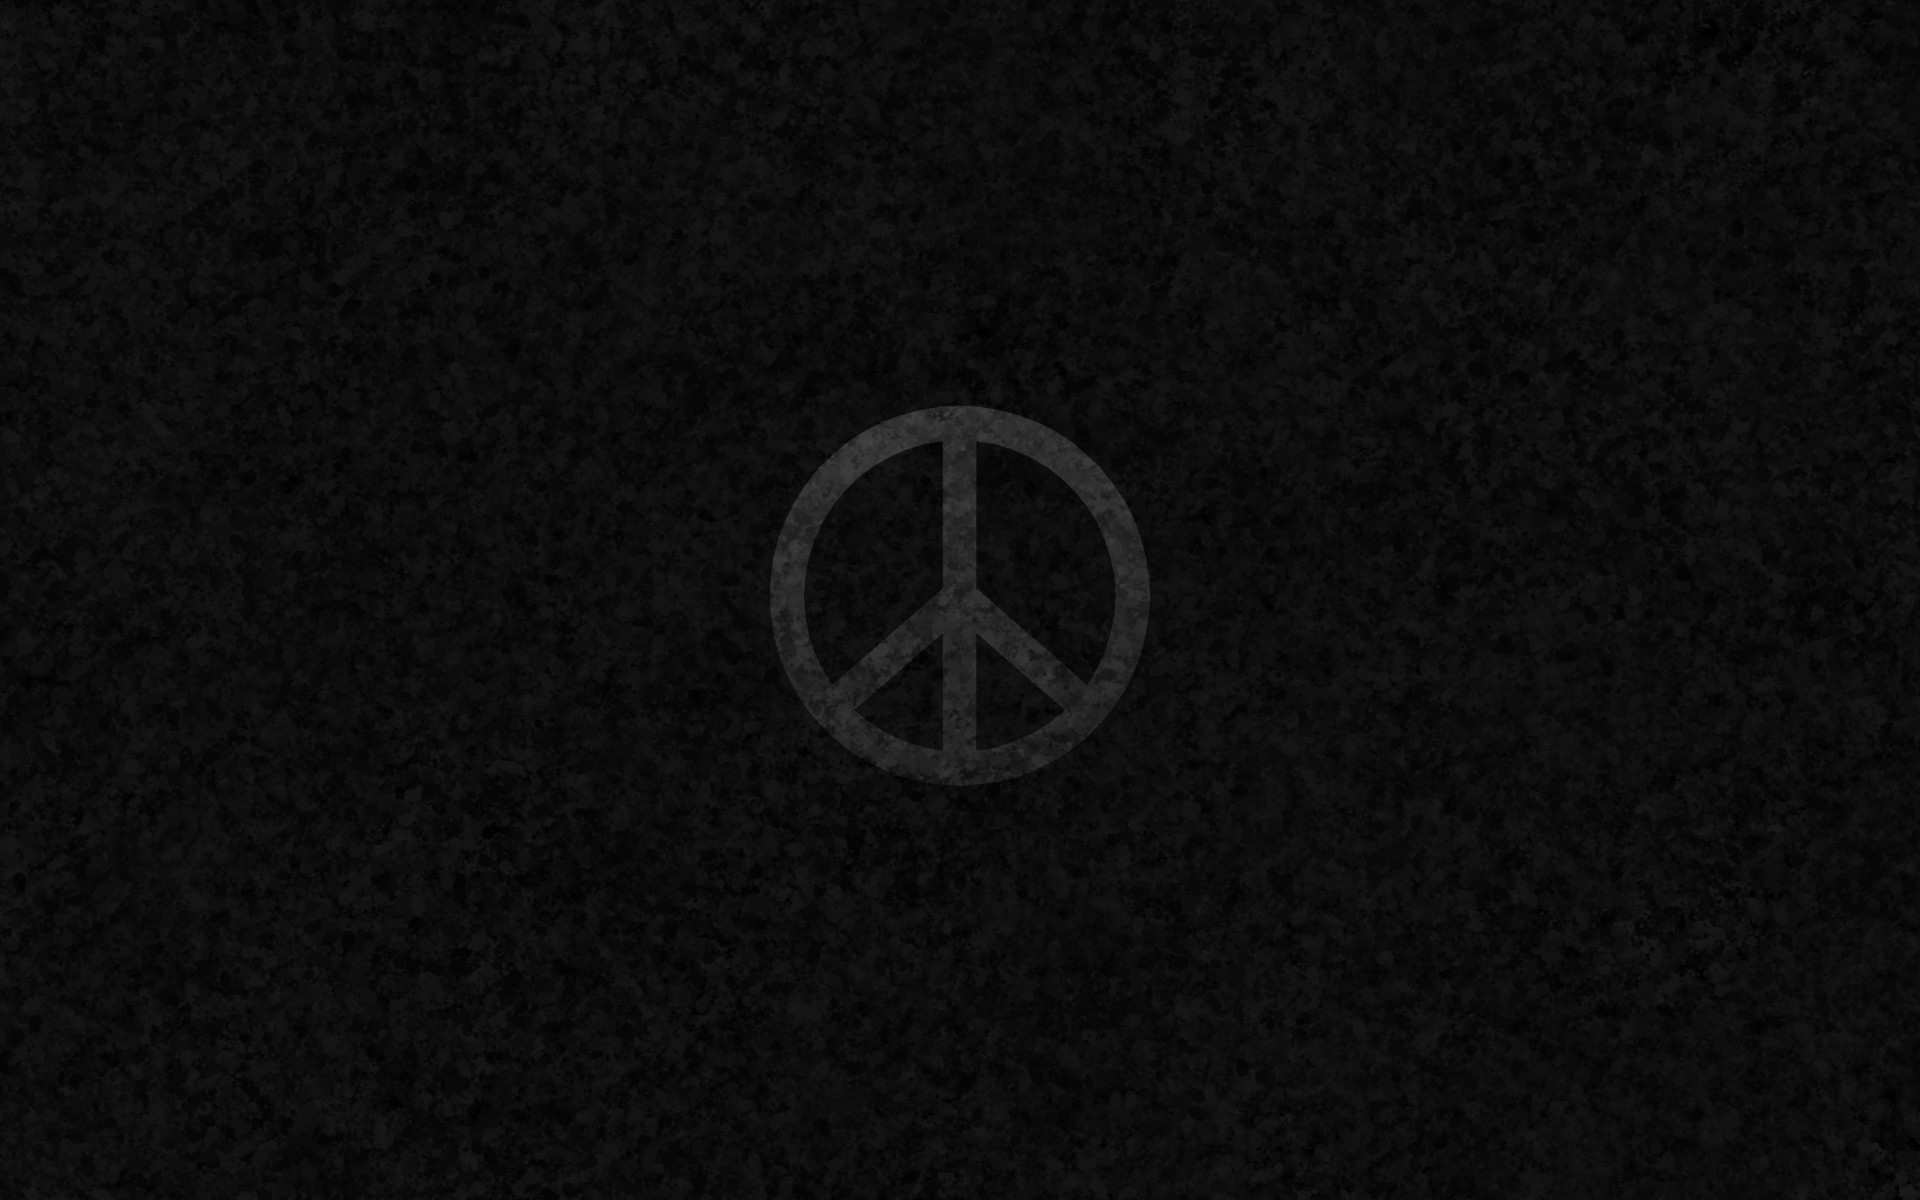 Peace Sign Wallpapers ·â'